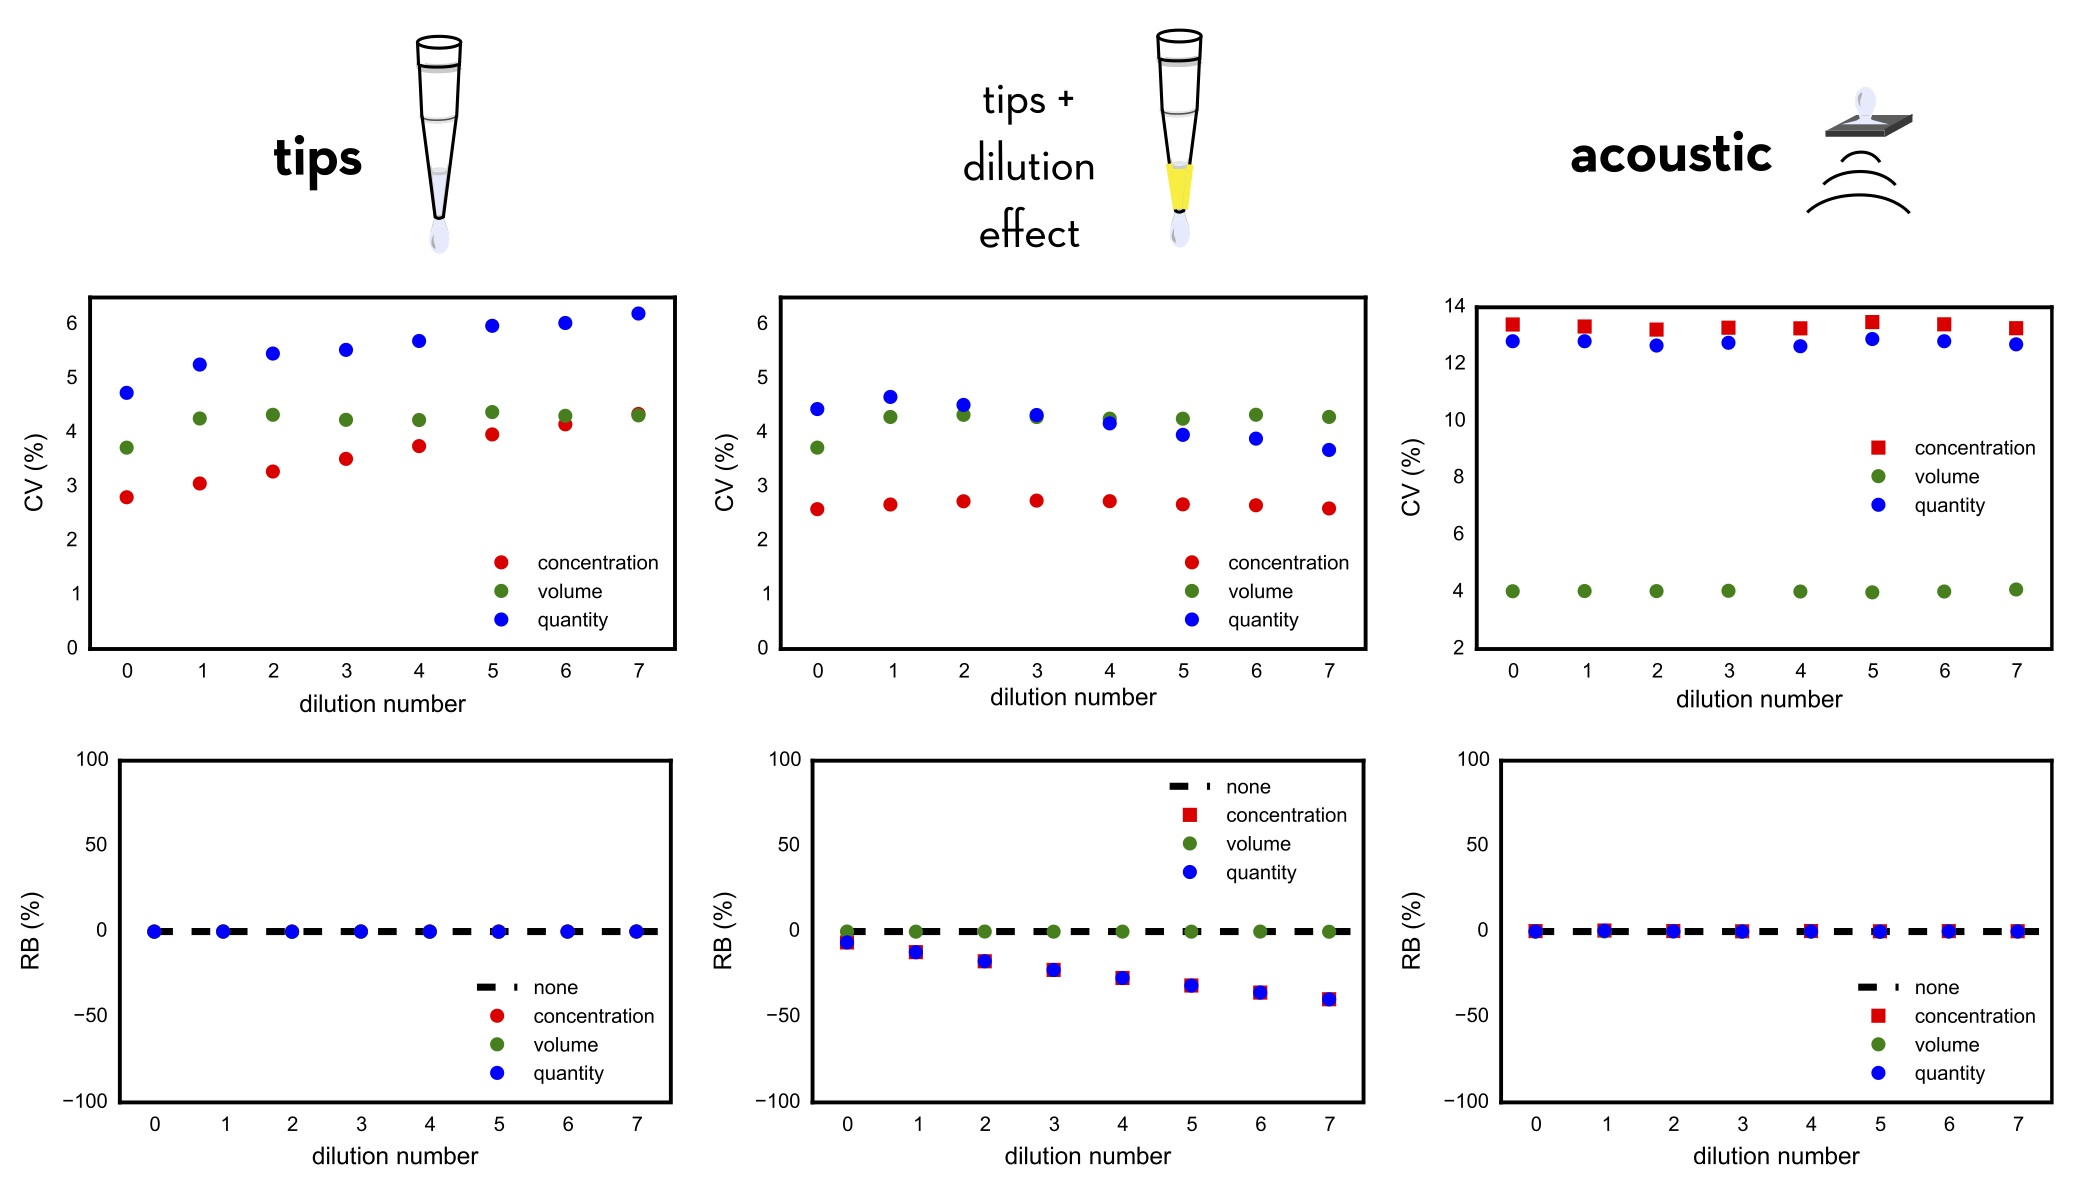 Bootstrap modeling of a simple dilution series generated using disposable tips, washable tips, and acoustic dispensing demonstrates how strikingly different bias and variance profiles emerge. Hanson et al. JCAMD 29:1073, 2015.